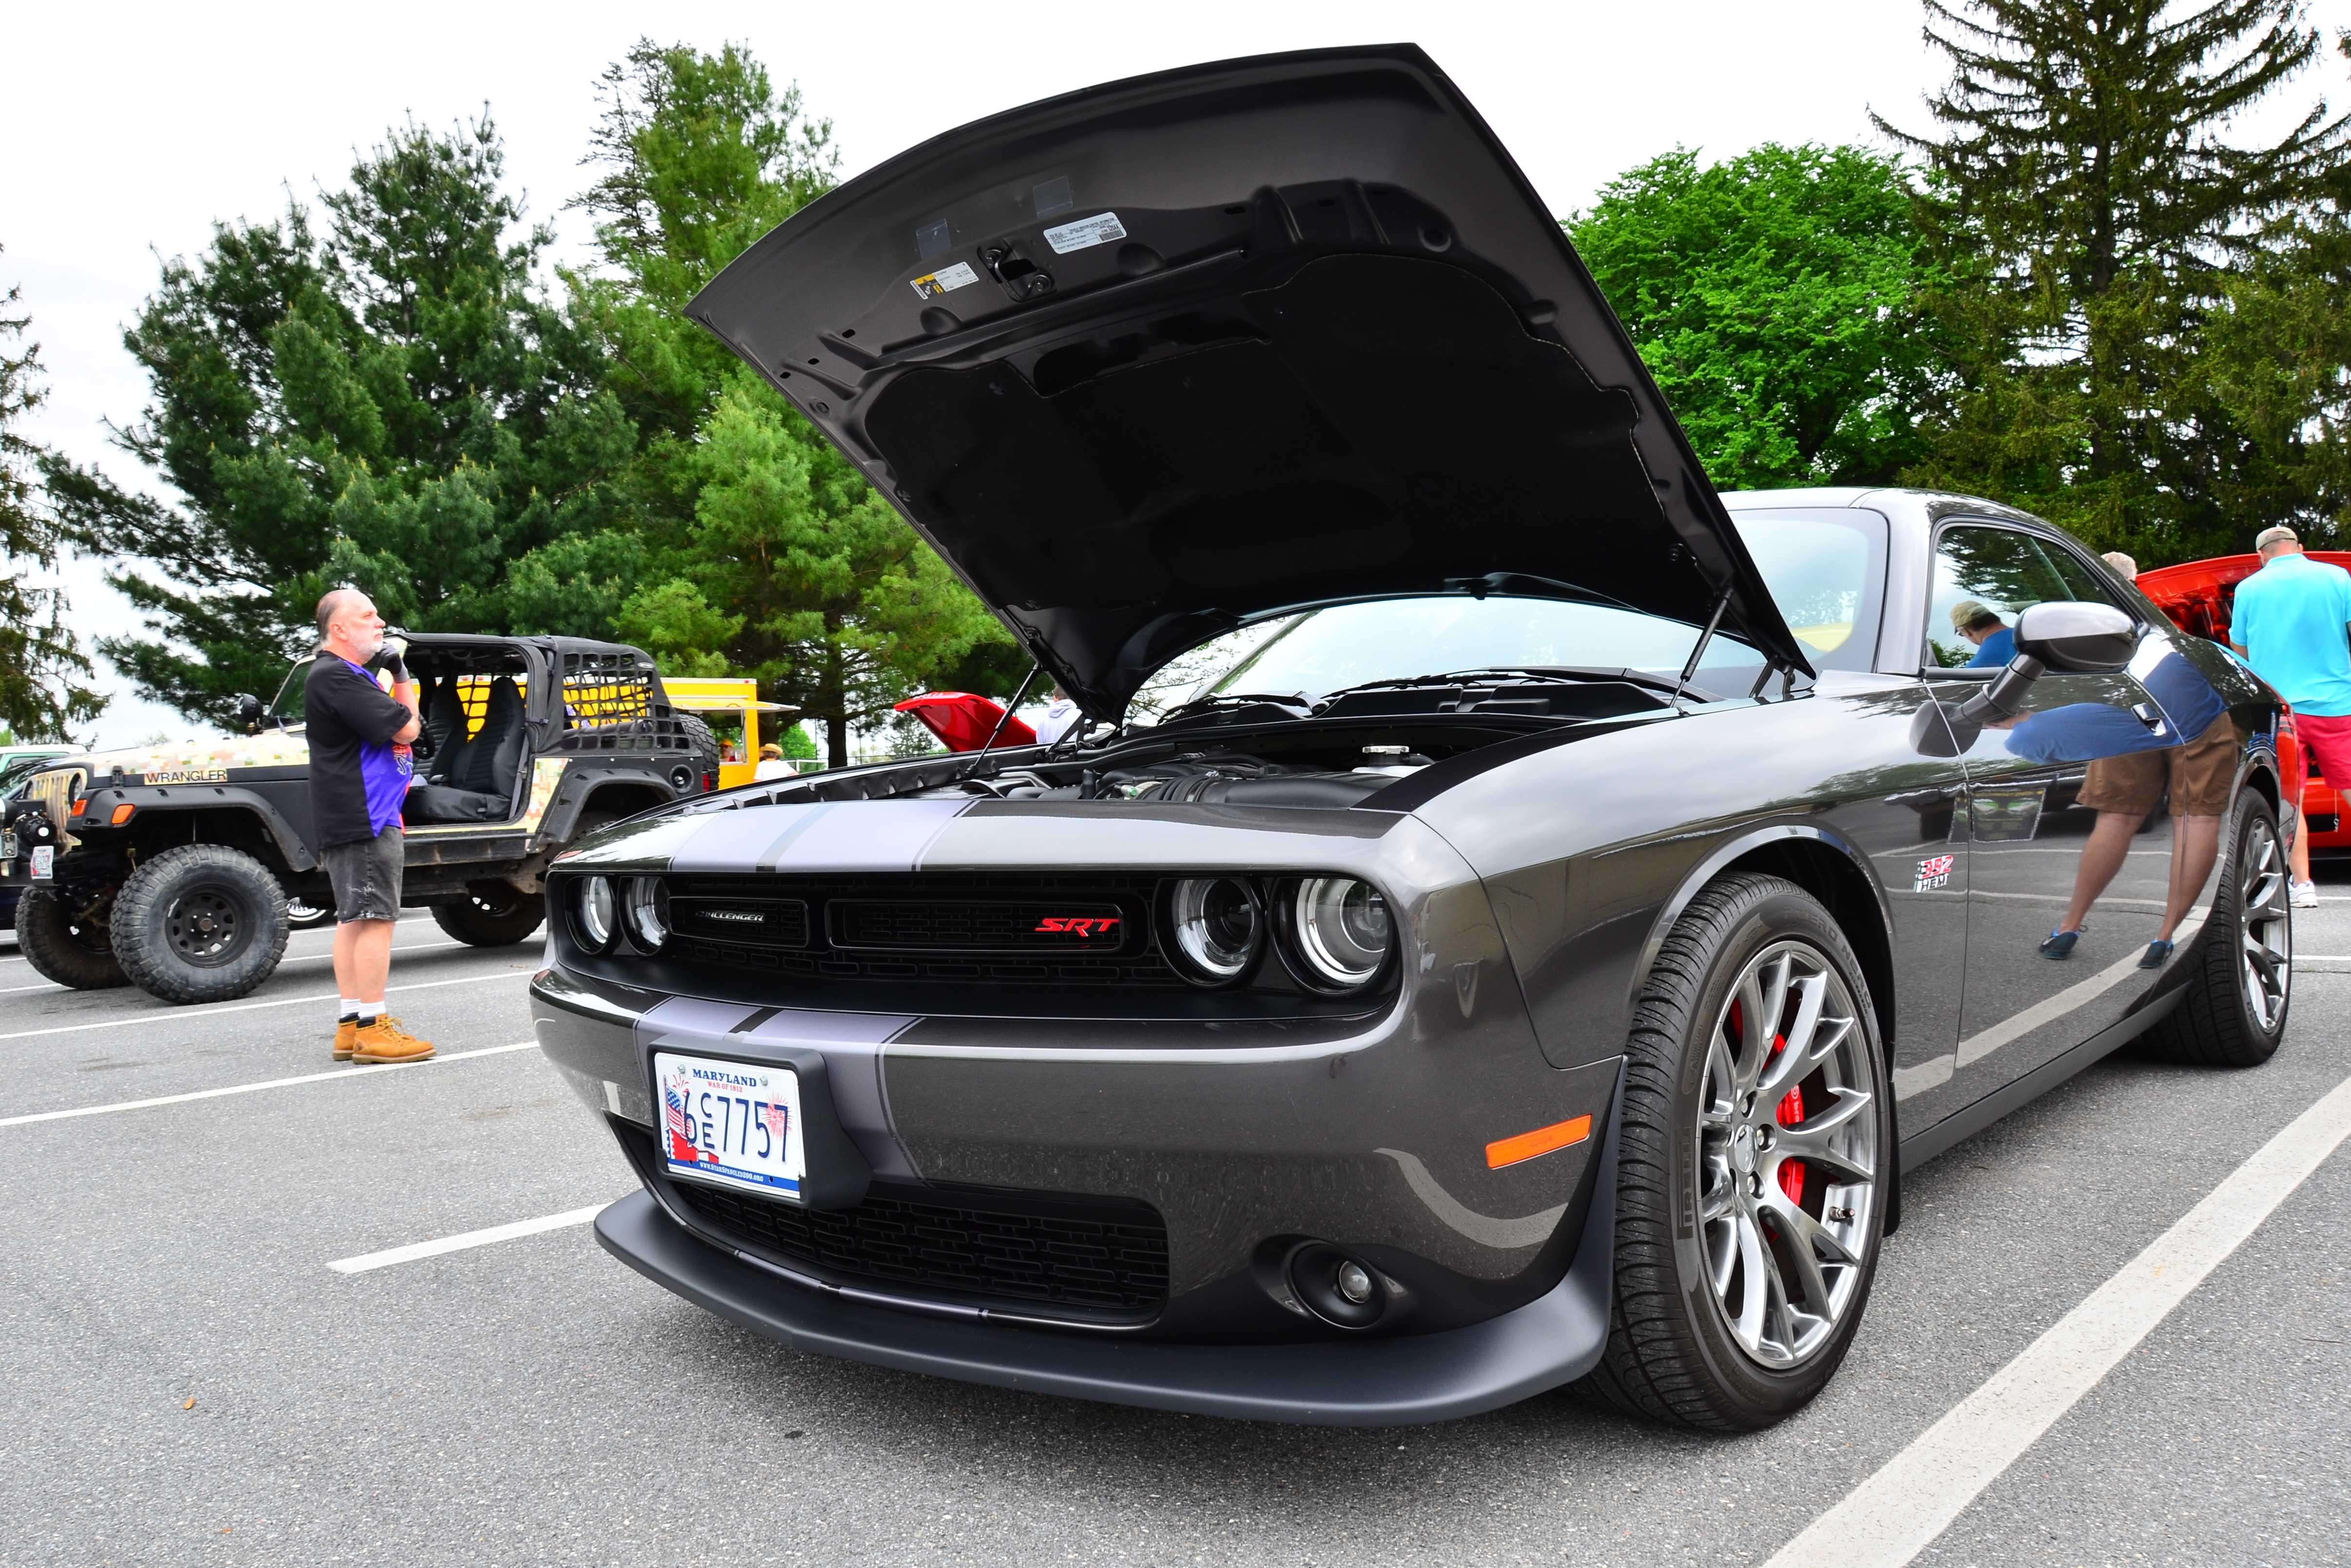 dodge item awesome srt hellcat product challenger awesomeamazinggreat specifics